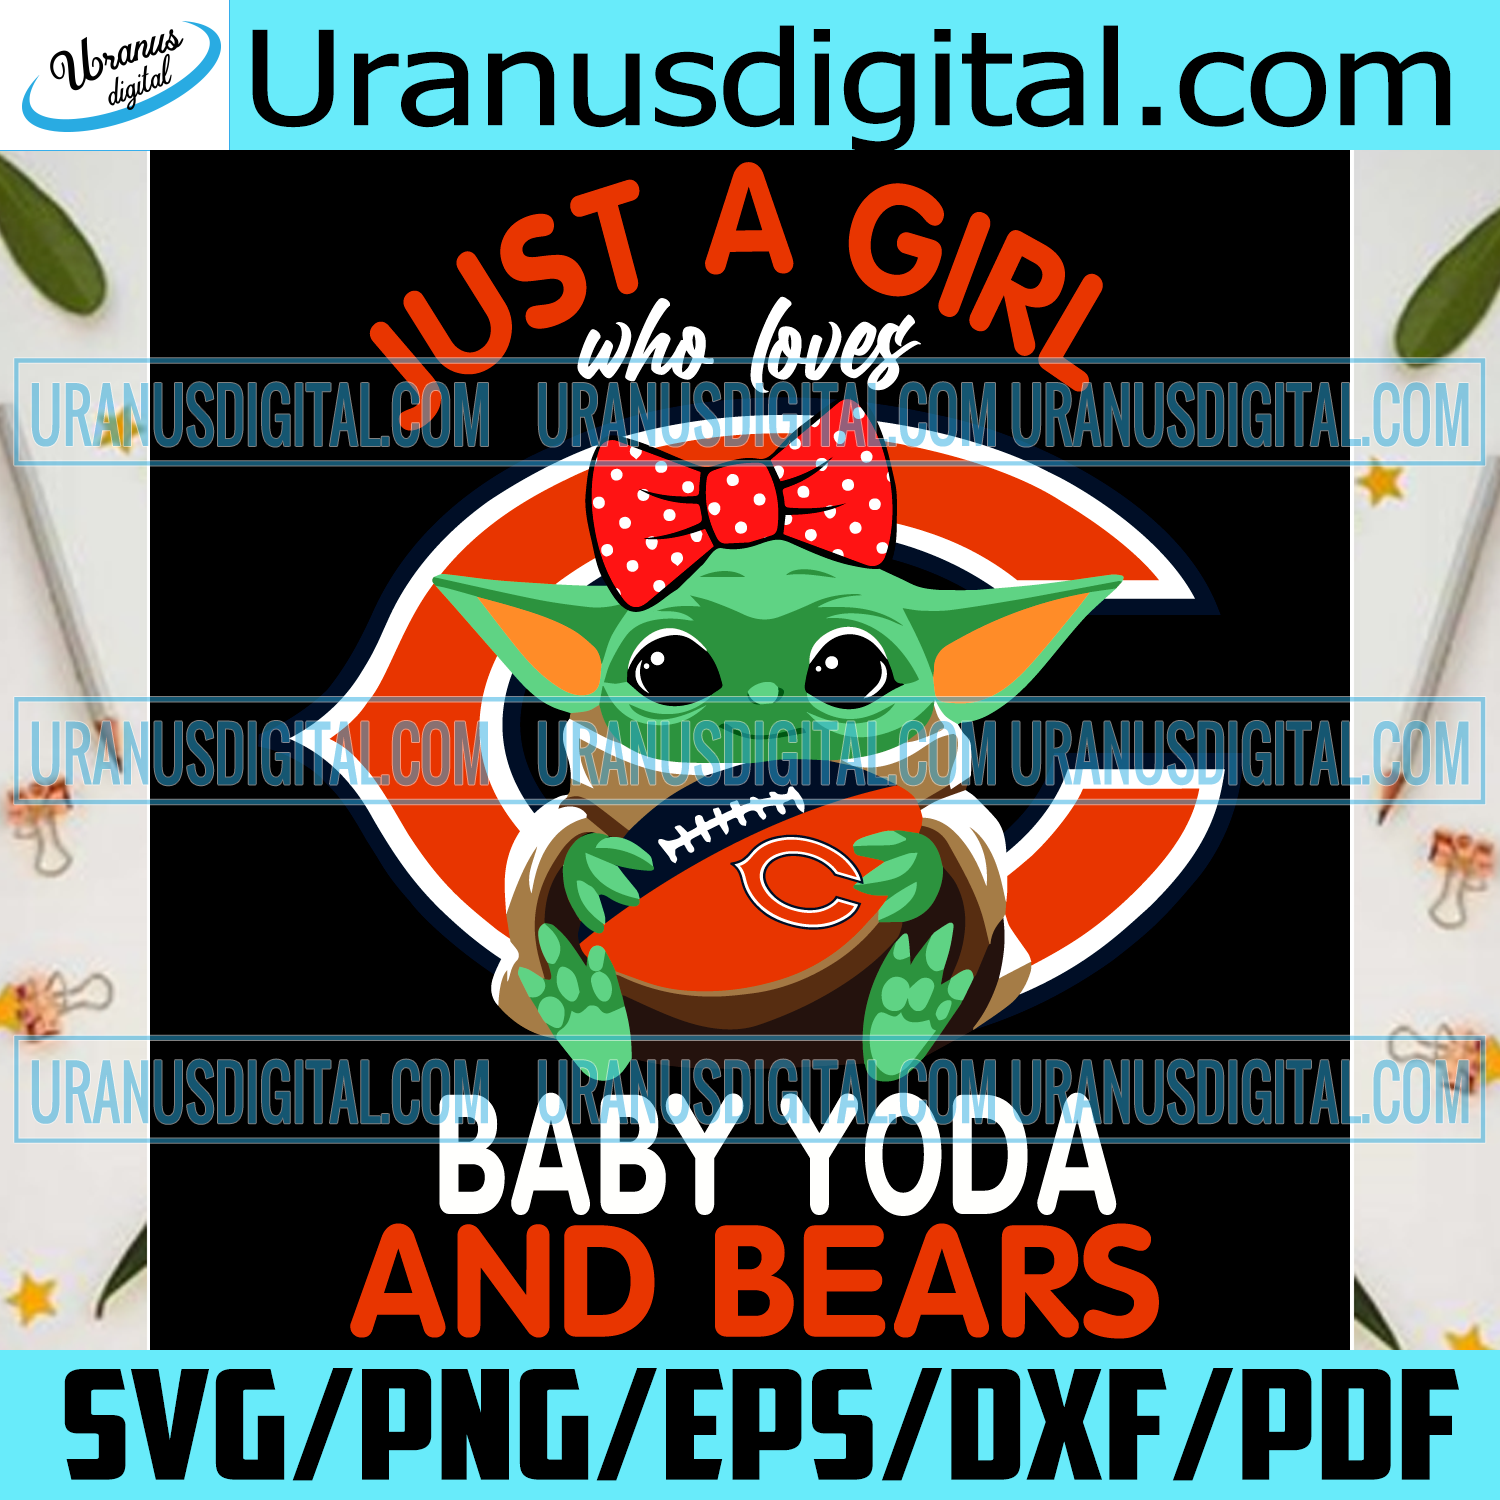 Just A Girl Who Loves Baby Yoda And Chicago Bears Svg, Sport Svg, Girl Svg, Baby Yoda Svg, Love Svg, Star Wars Svg, Chicago Bears Svg, Chicago Bears Logo Svg, Bears Svg, Bears Fans, Bears Football Svg, NFL Svg, Football Svg